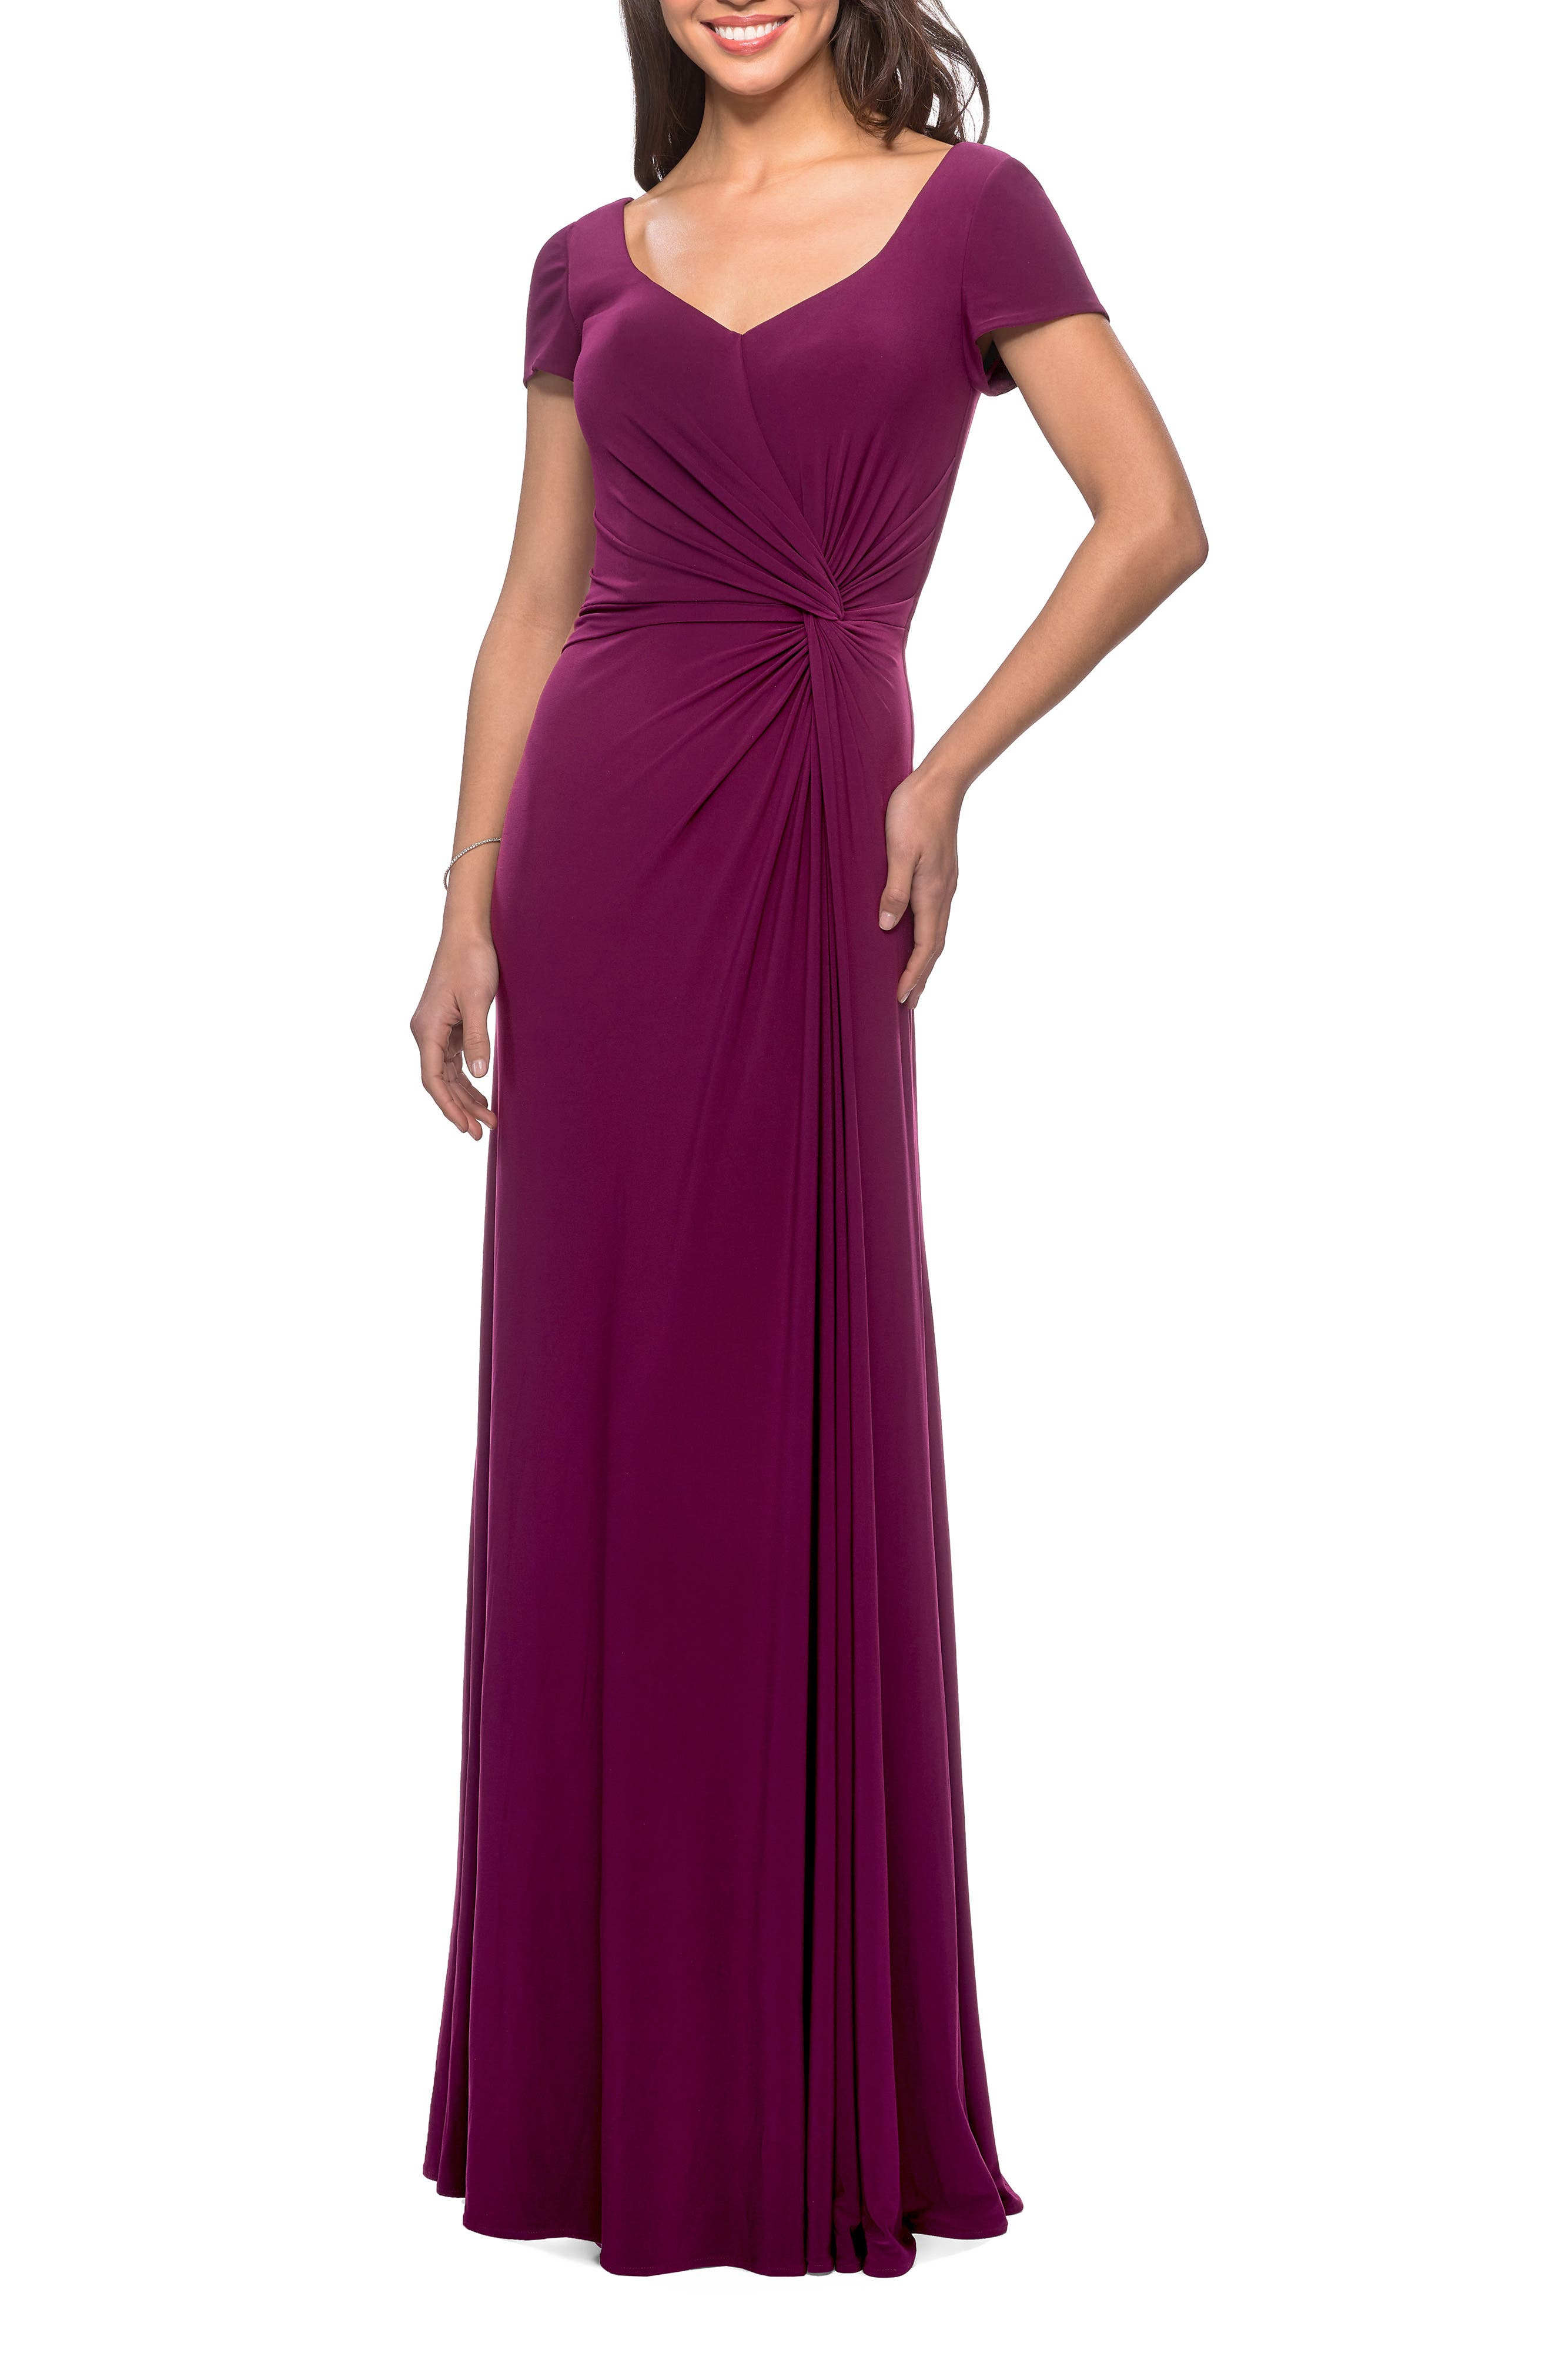 An A-line gown with modern elegance and simplicity is made of fluid jersey with a face-framing sweetheart neckline and a twist of fabric whittling the waist. Style Name: La Femme Twist Front Jersey Gown. Style Number: 5877413. Available in stores.